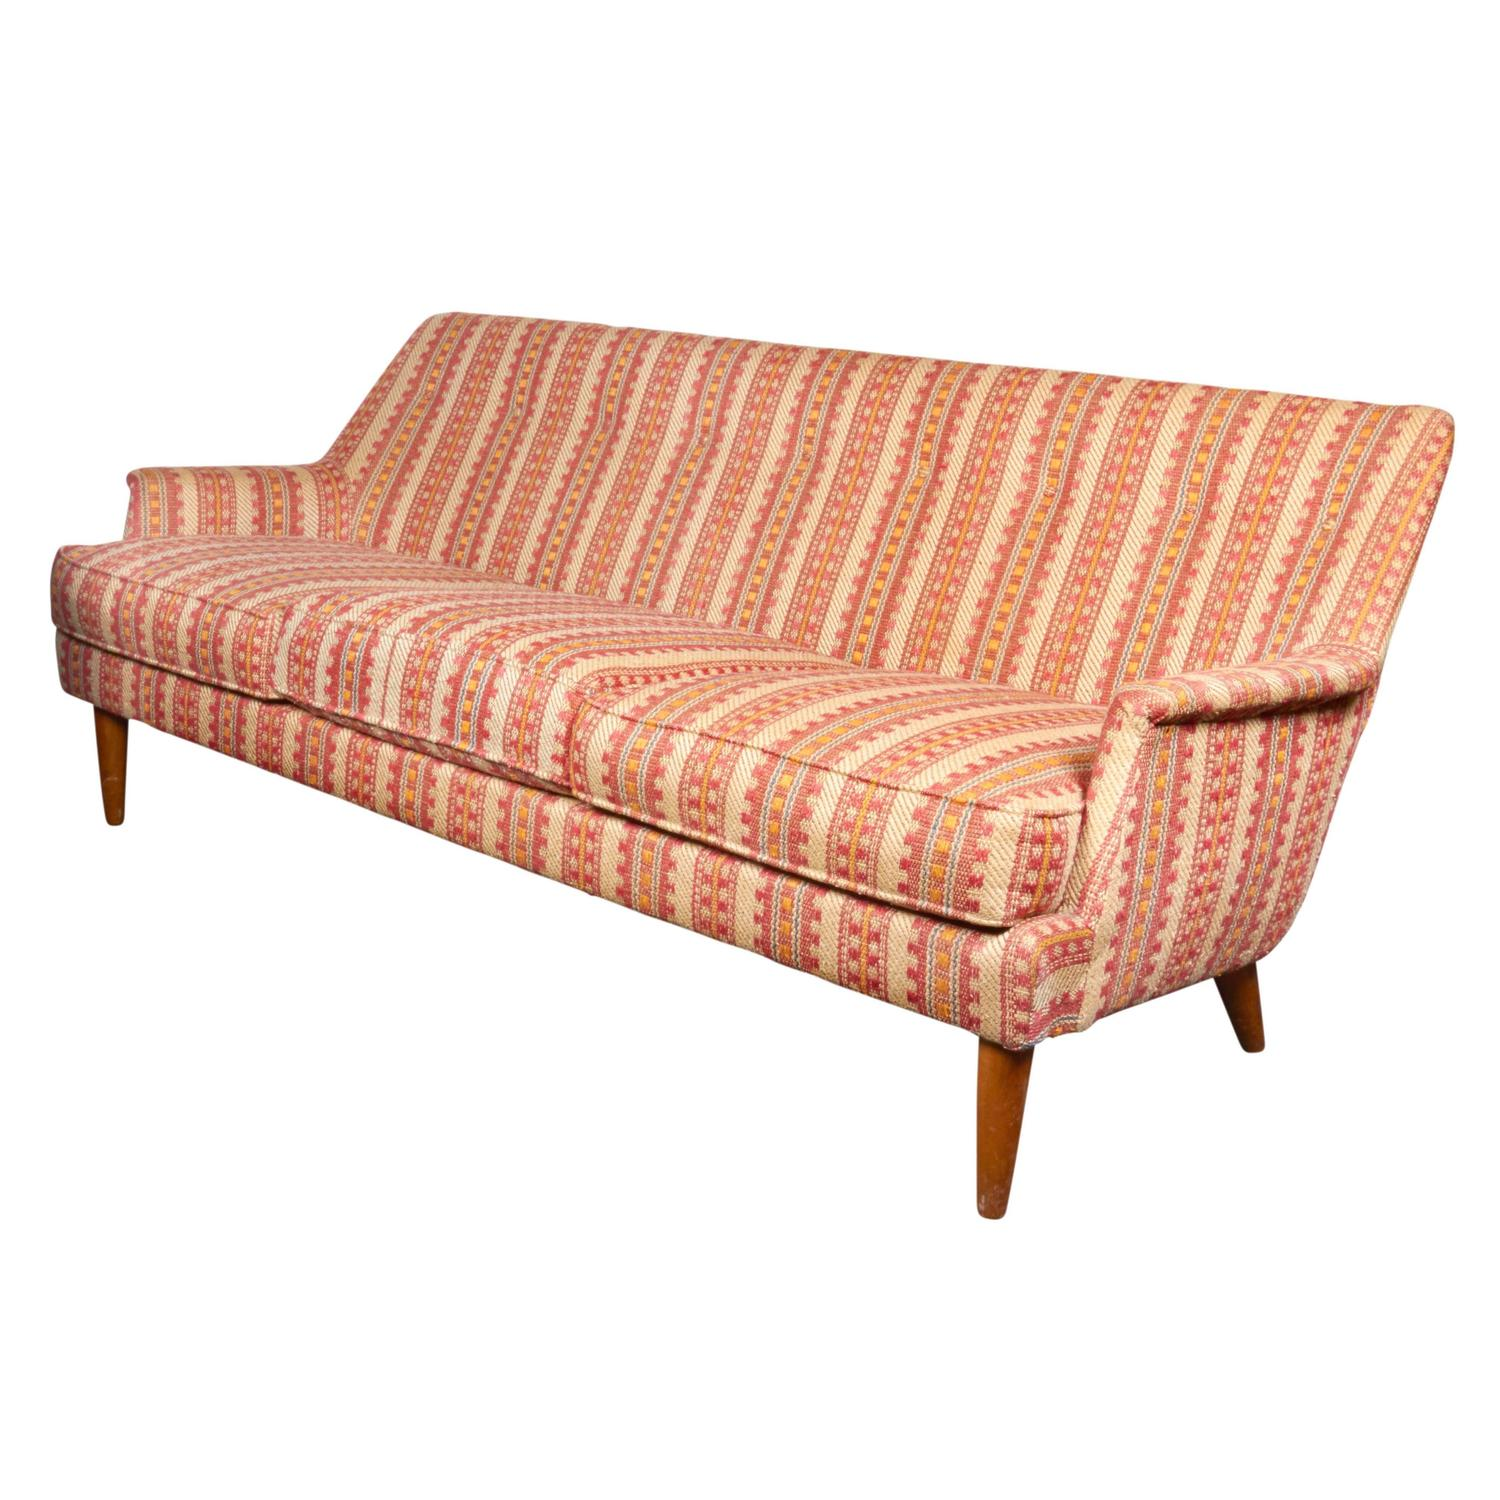 scandinavian modern 1960s sofa with woven fabric for sale at 1stdibs. Black Bedroom Furniture Sets. Home Design Ideas